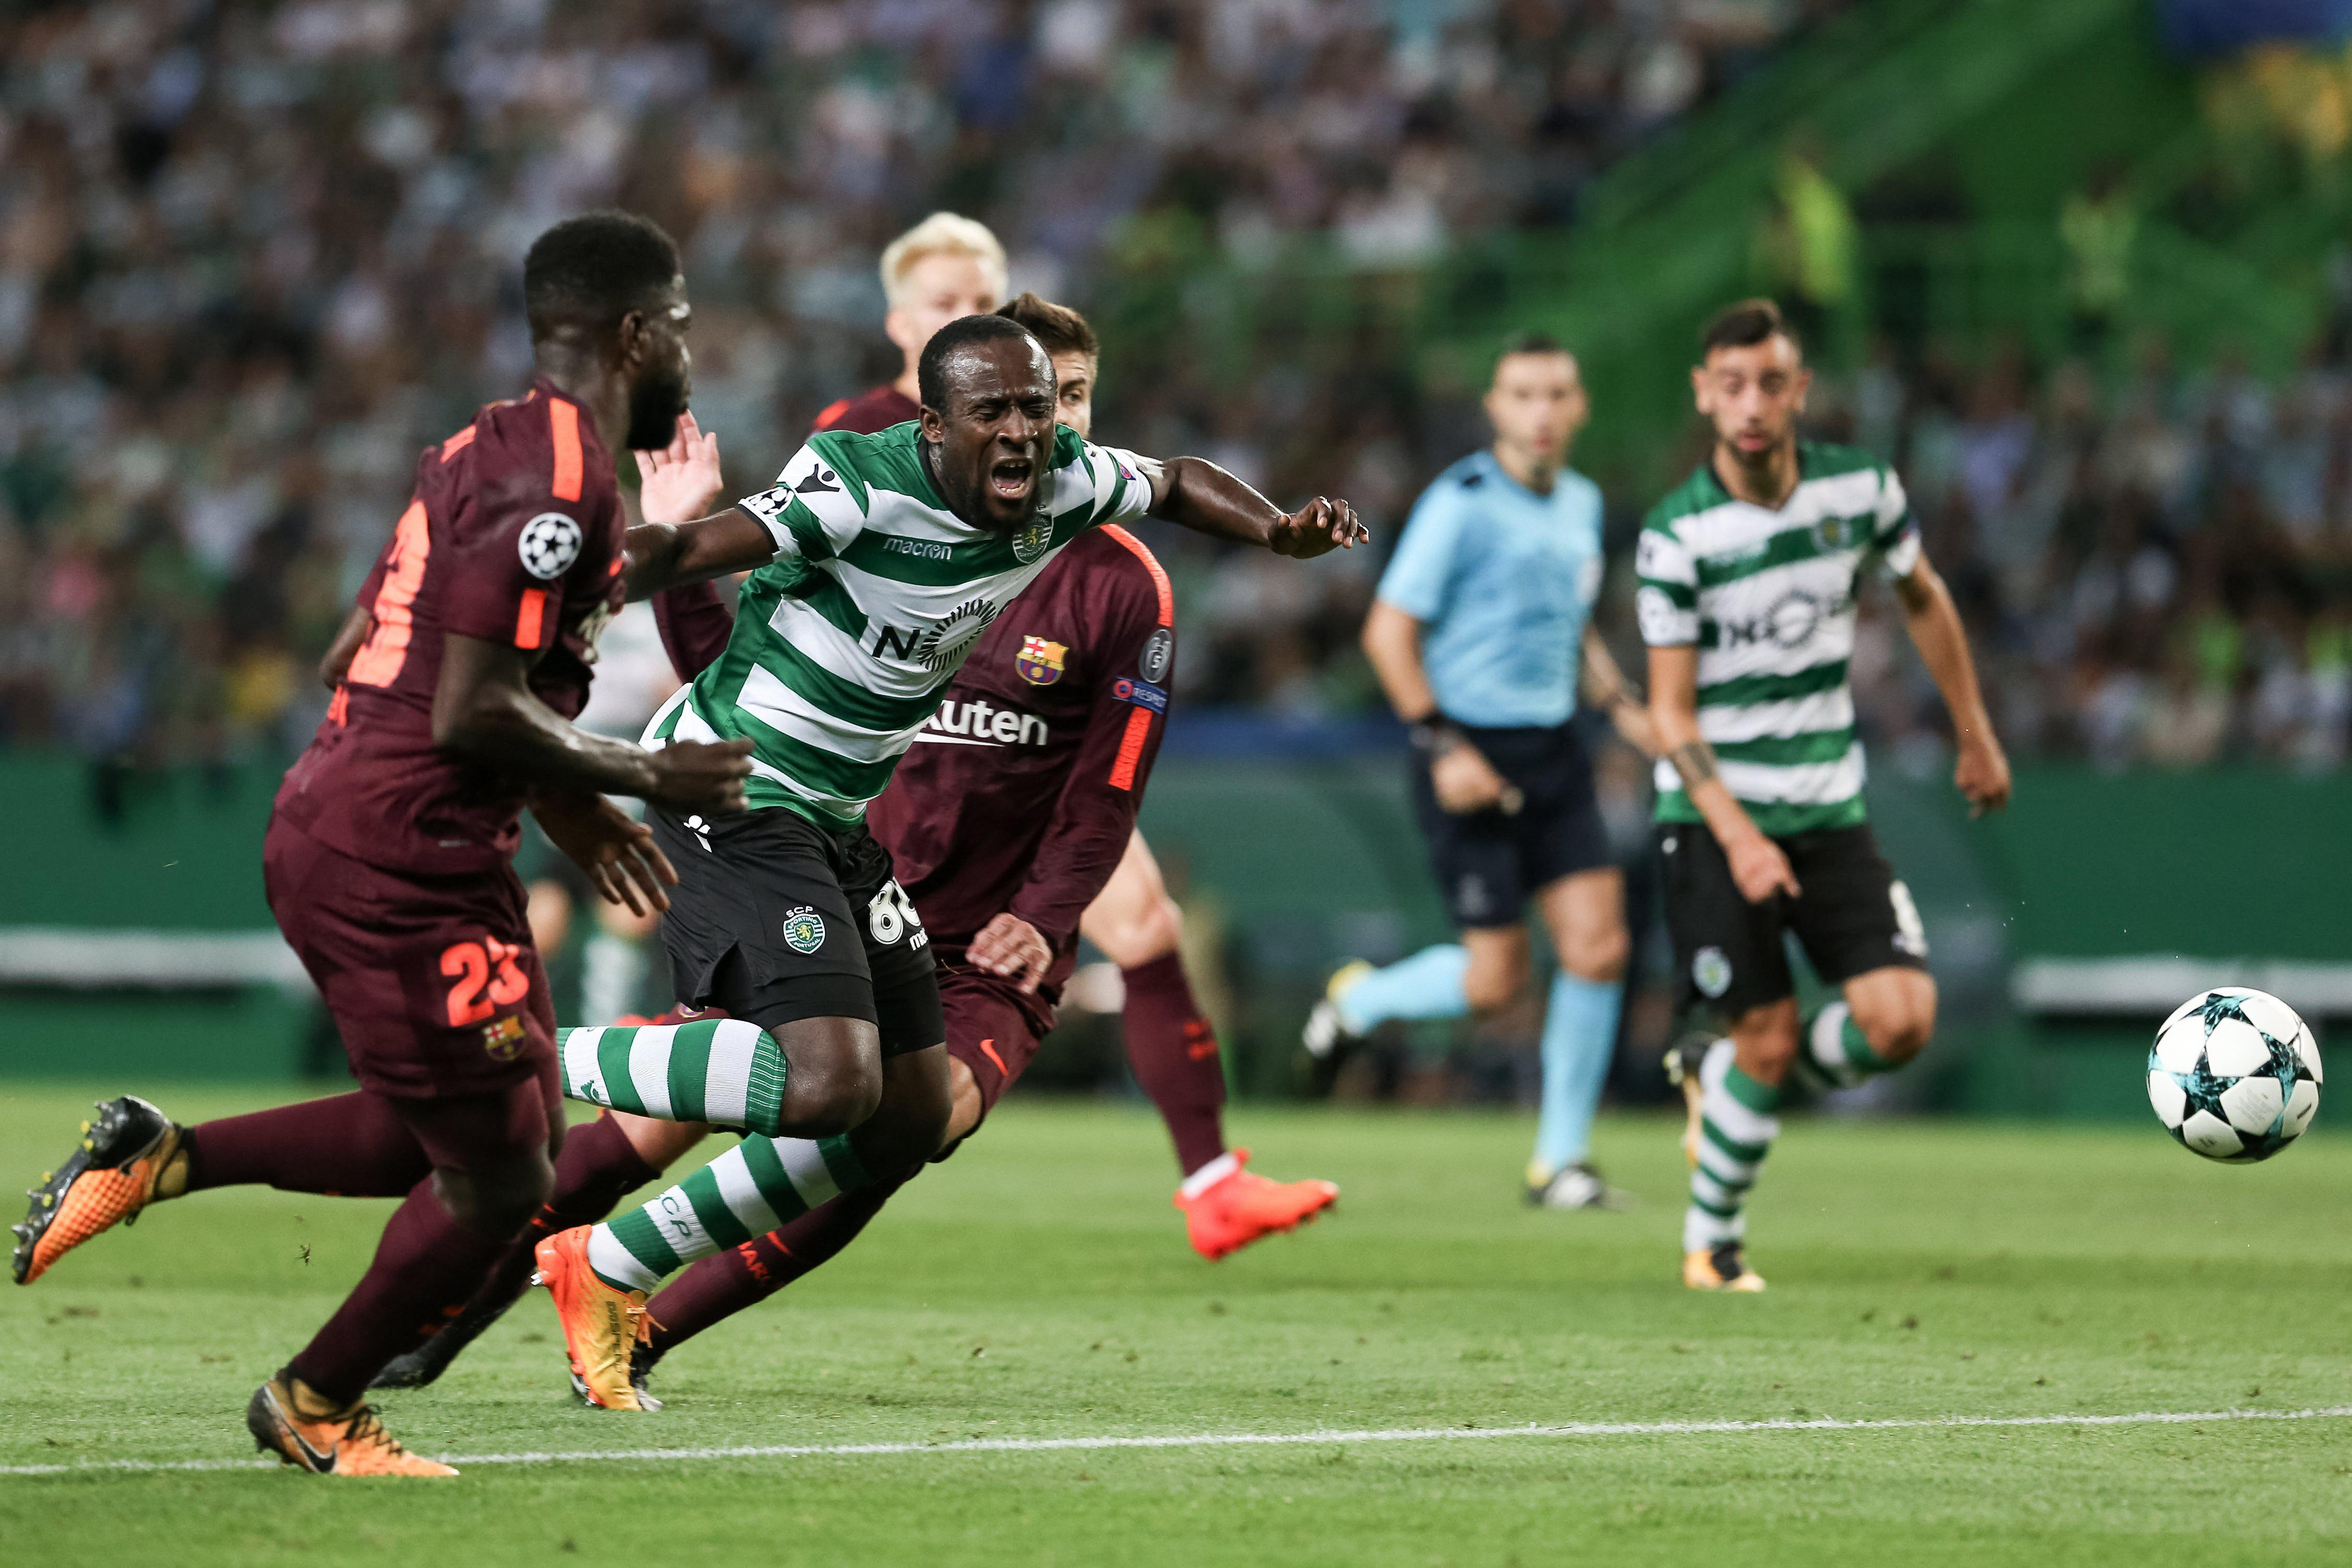 Sporting Lisbon striker Seydou Doumbia injures himself diving and